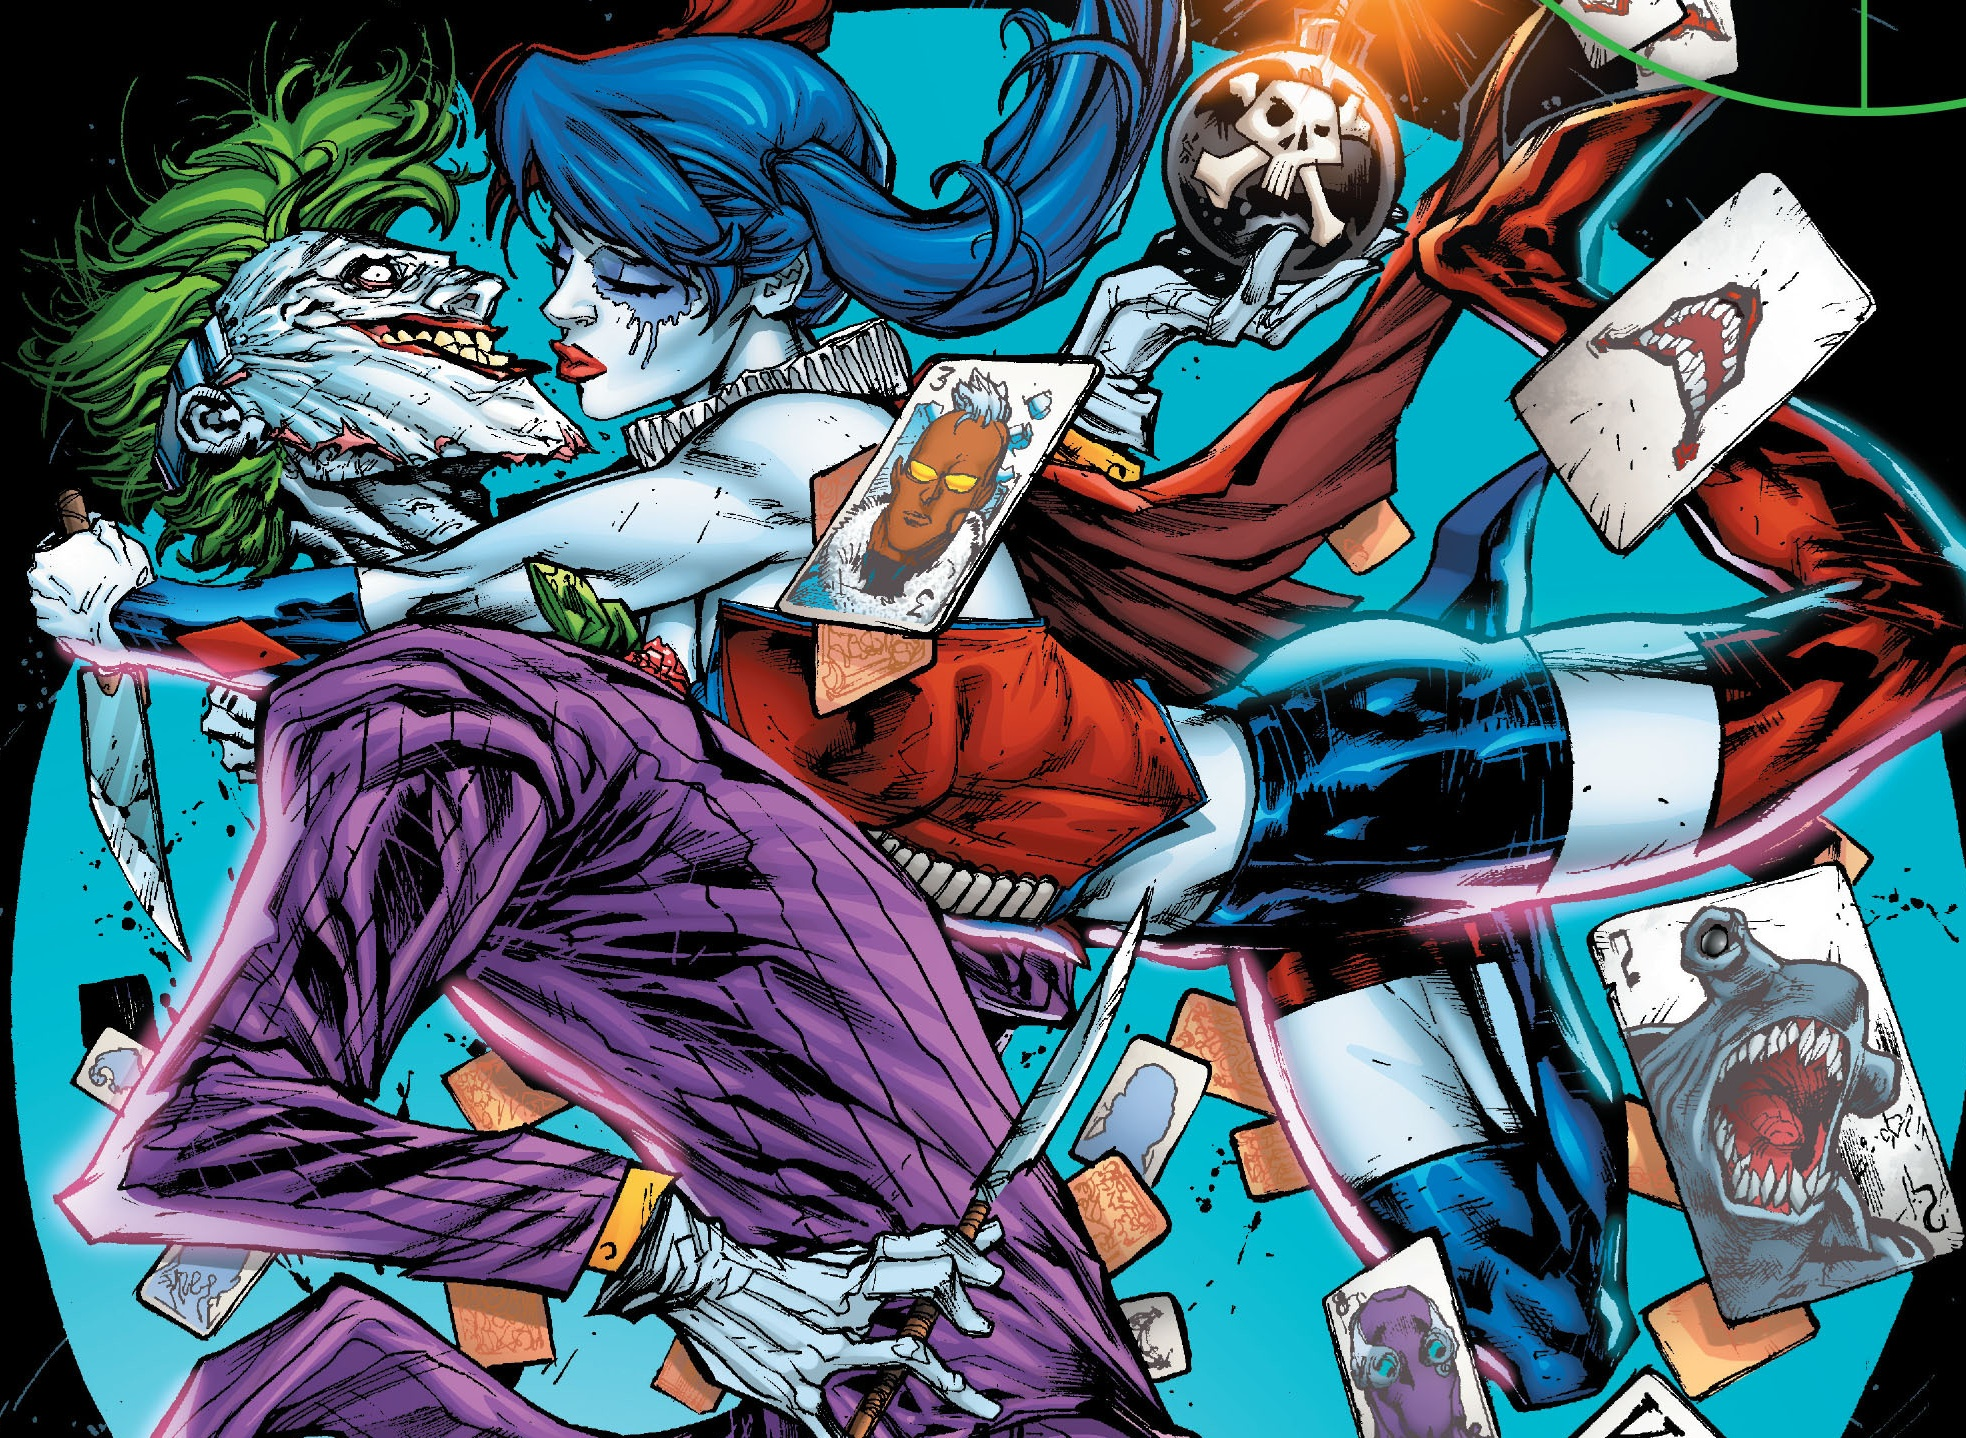 9501e71ee0a3 The Joker and Harley Quinn get into a fight in Suicide Squad set pics and  videos